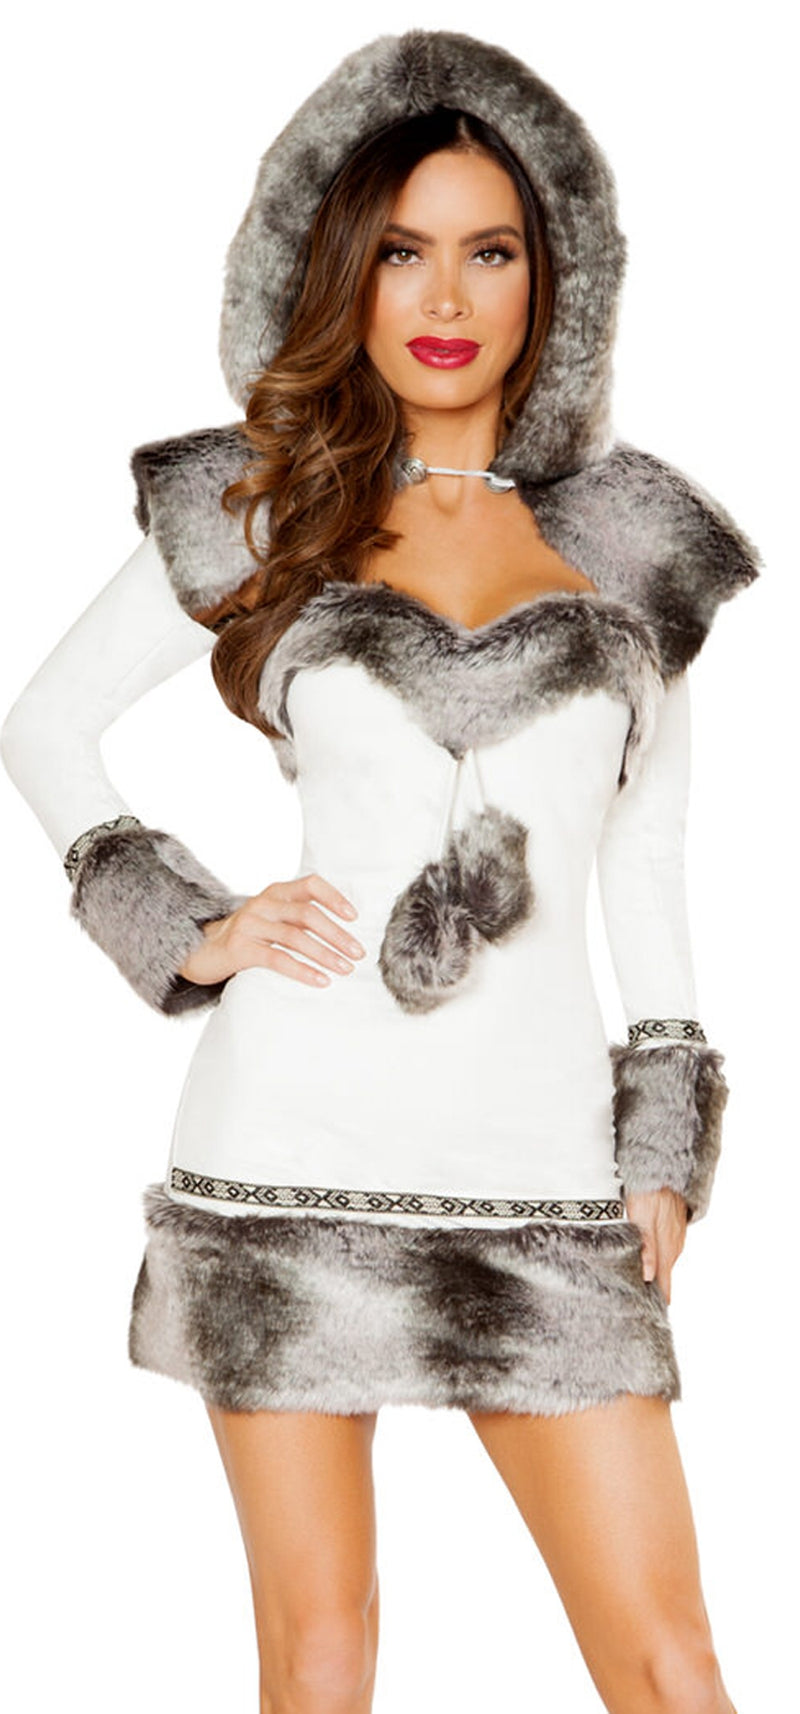 RM-4807 Eskimo Hottie Costume main